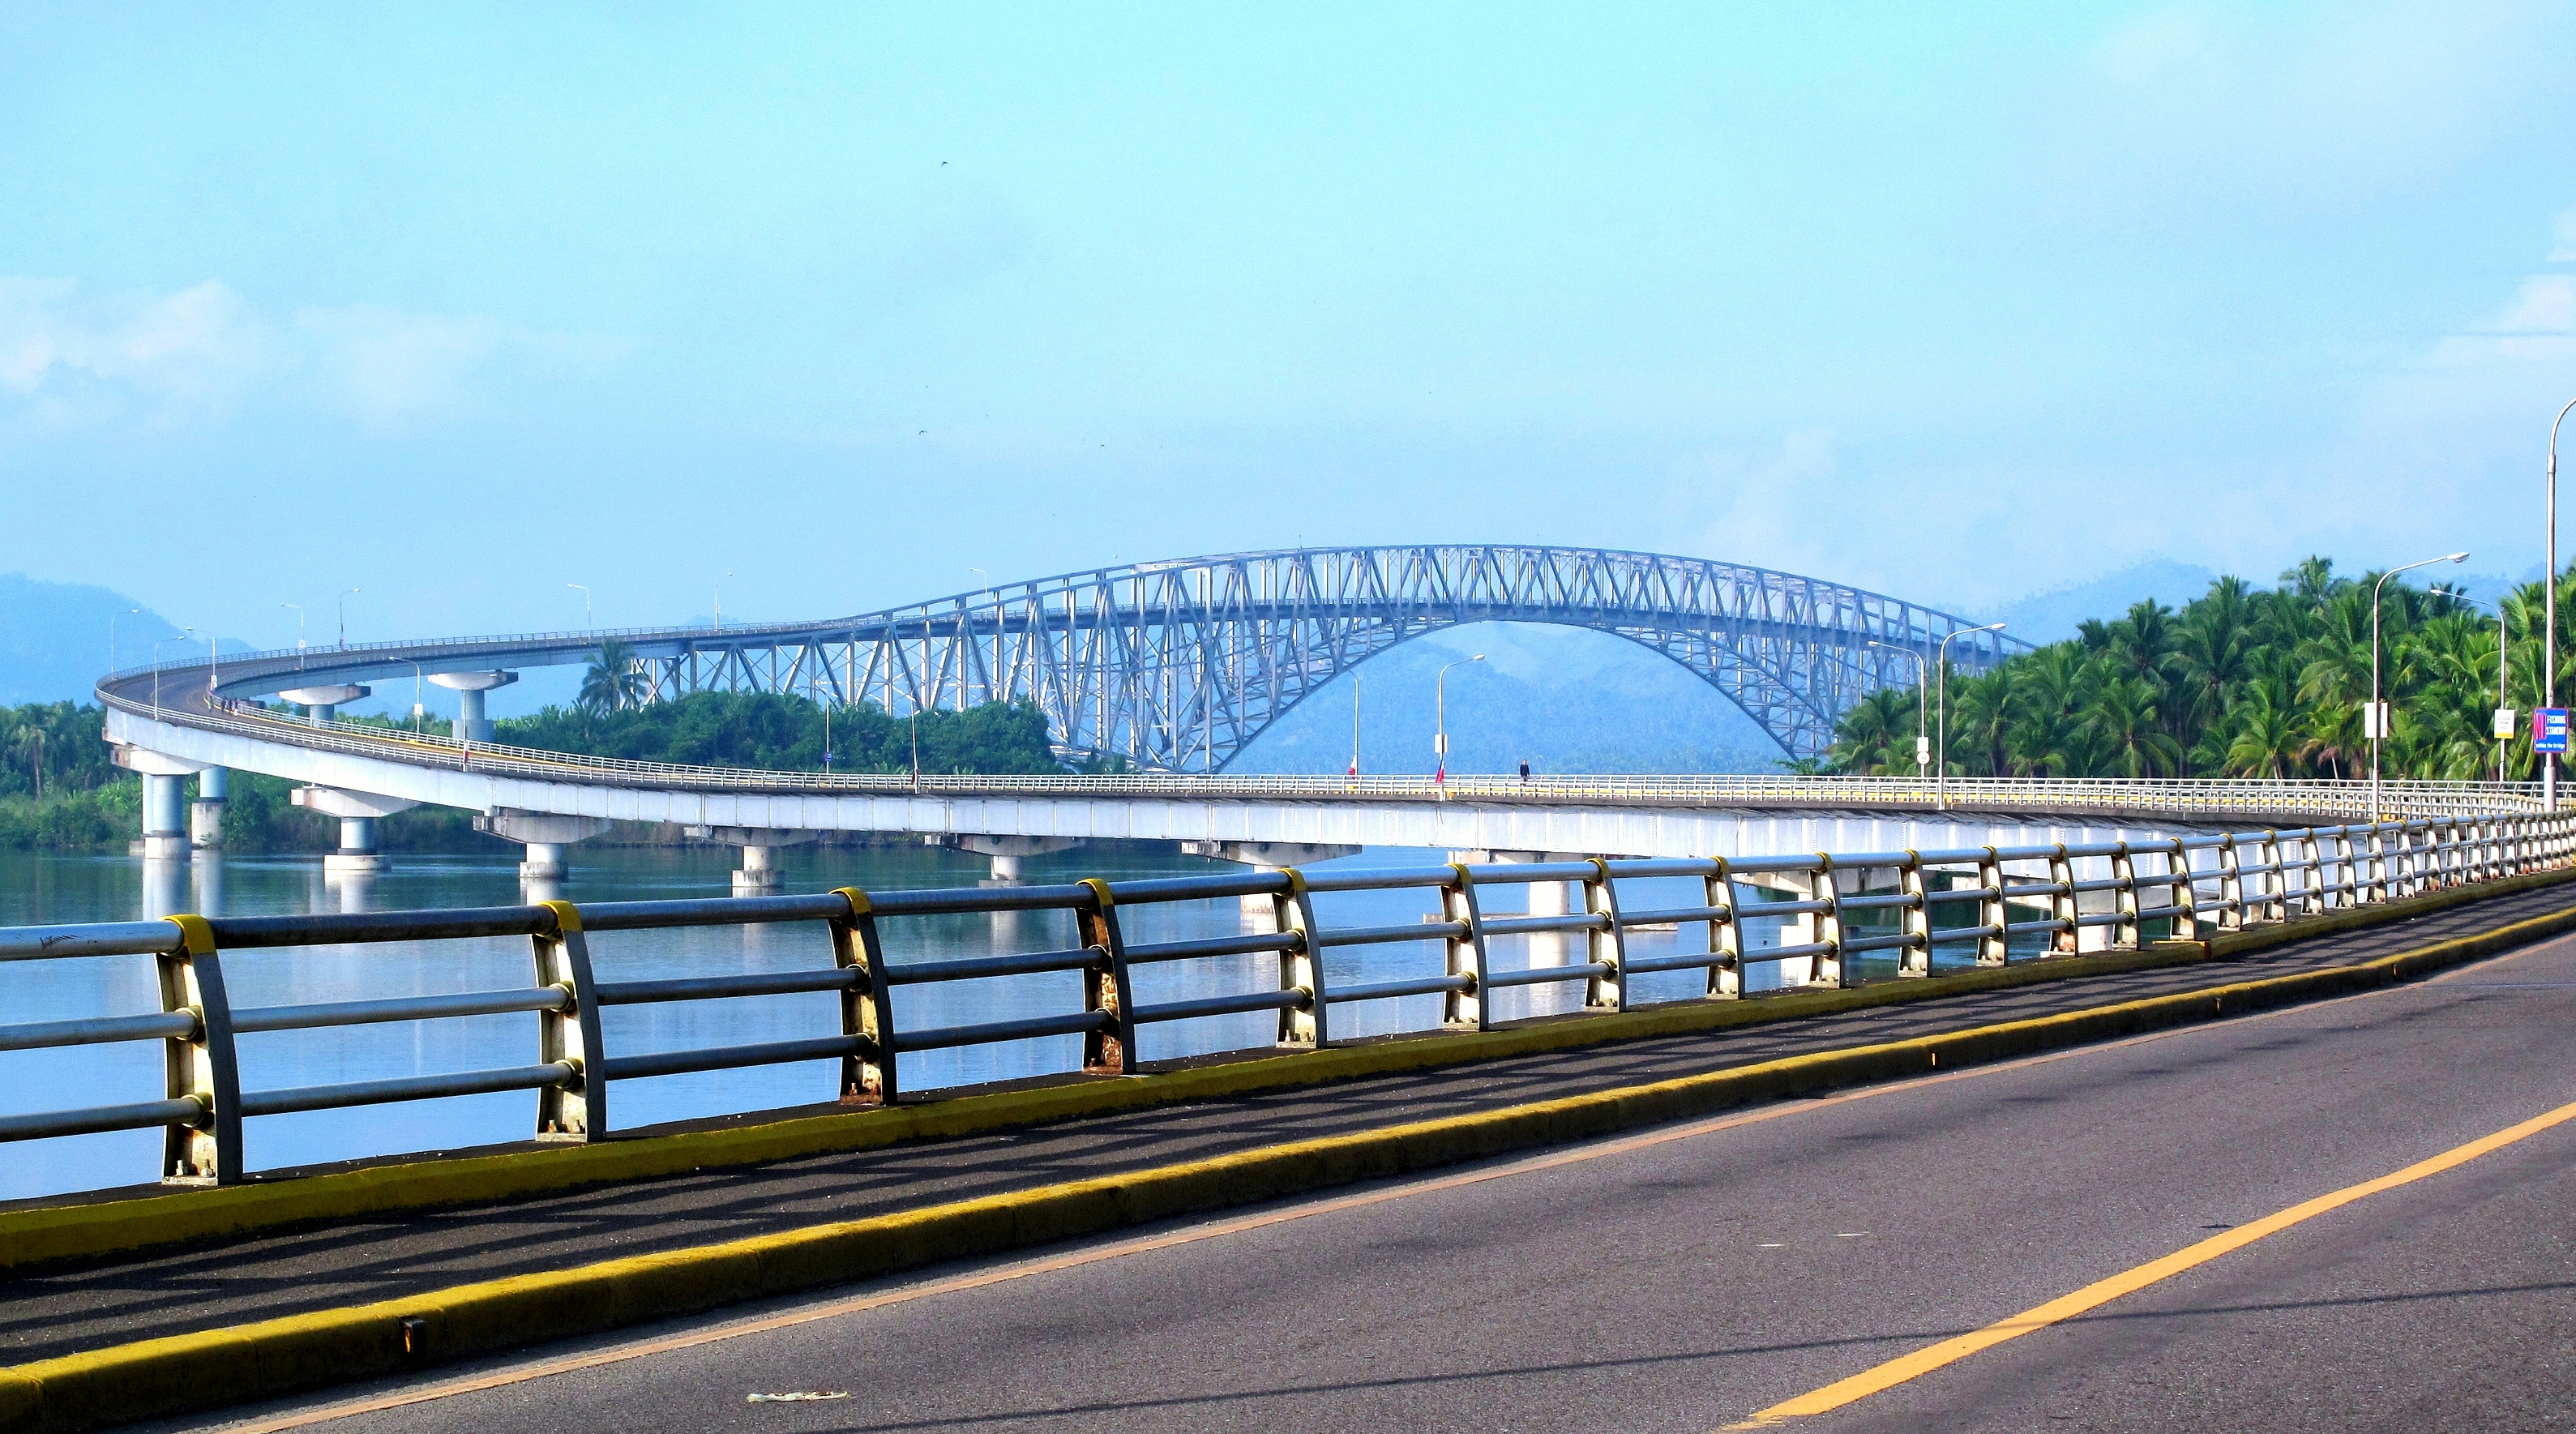 San Juanico Bridge http://commons.wikimedia.org/wiki/File:San_Juanico_Bridge_2.JPG